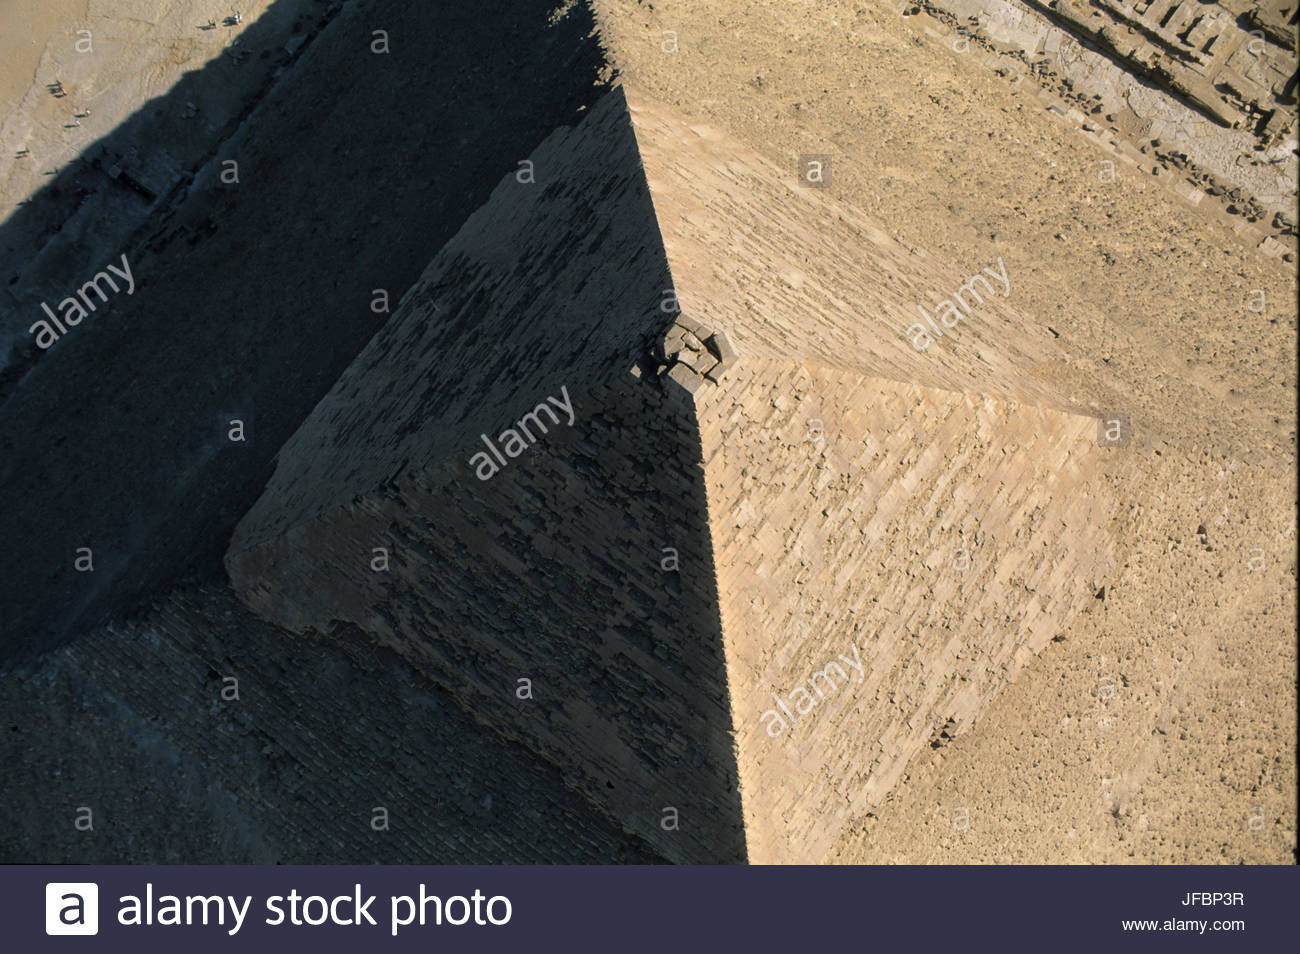 The Pyramid of Khafre. - Stock Image